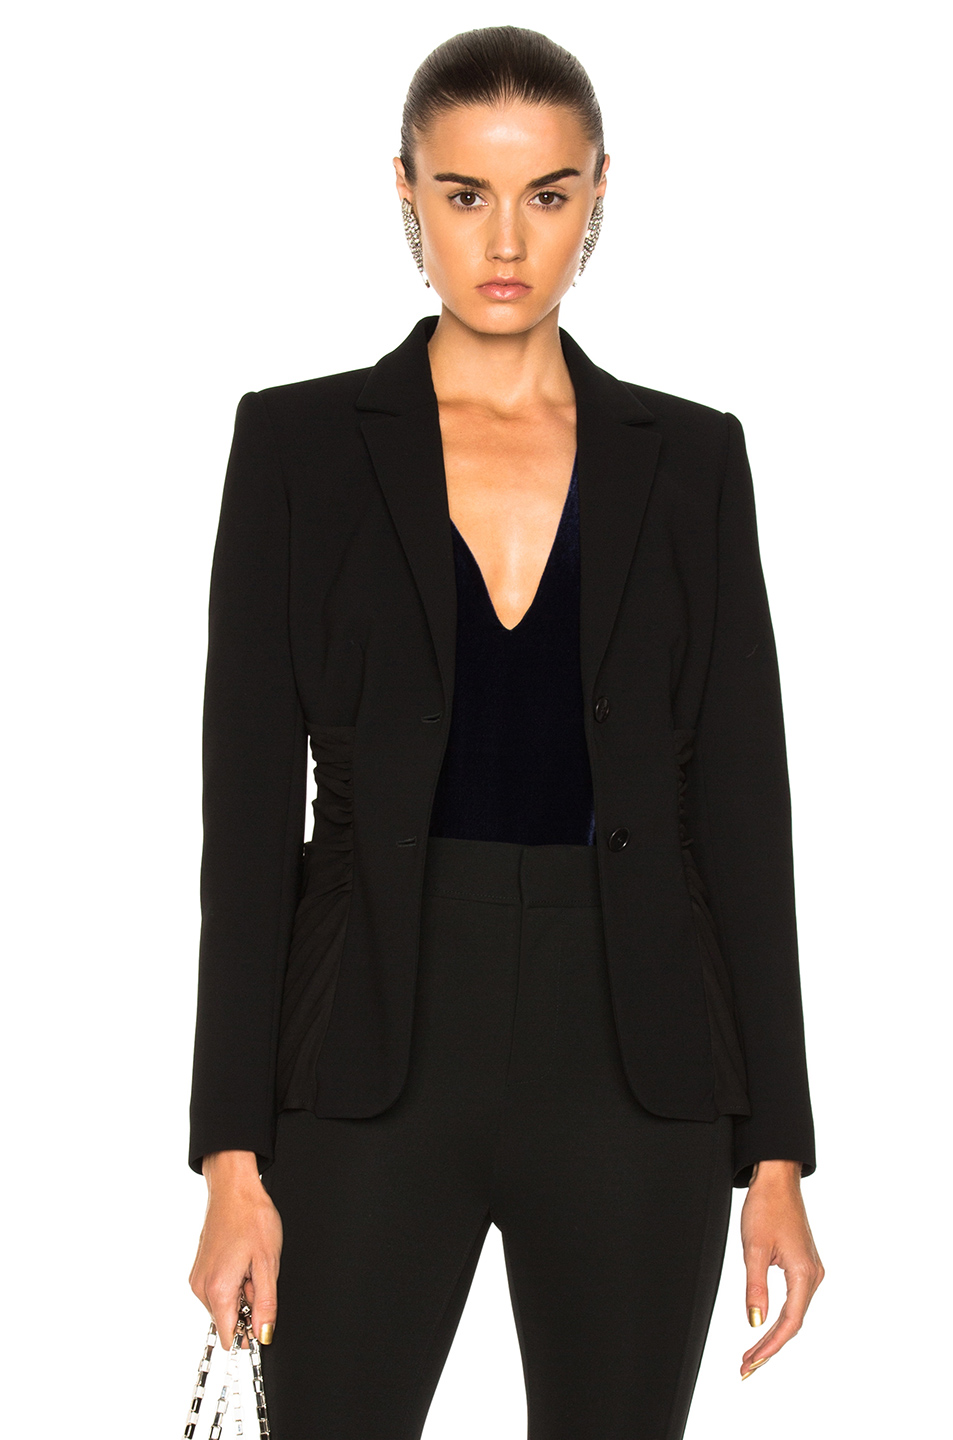 Altuzarra Simeon Jacket in Black